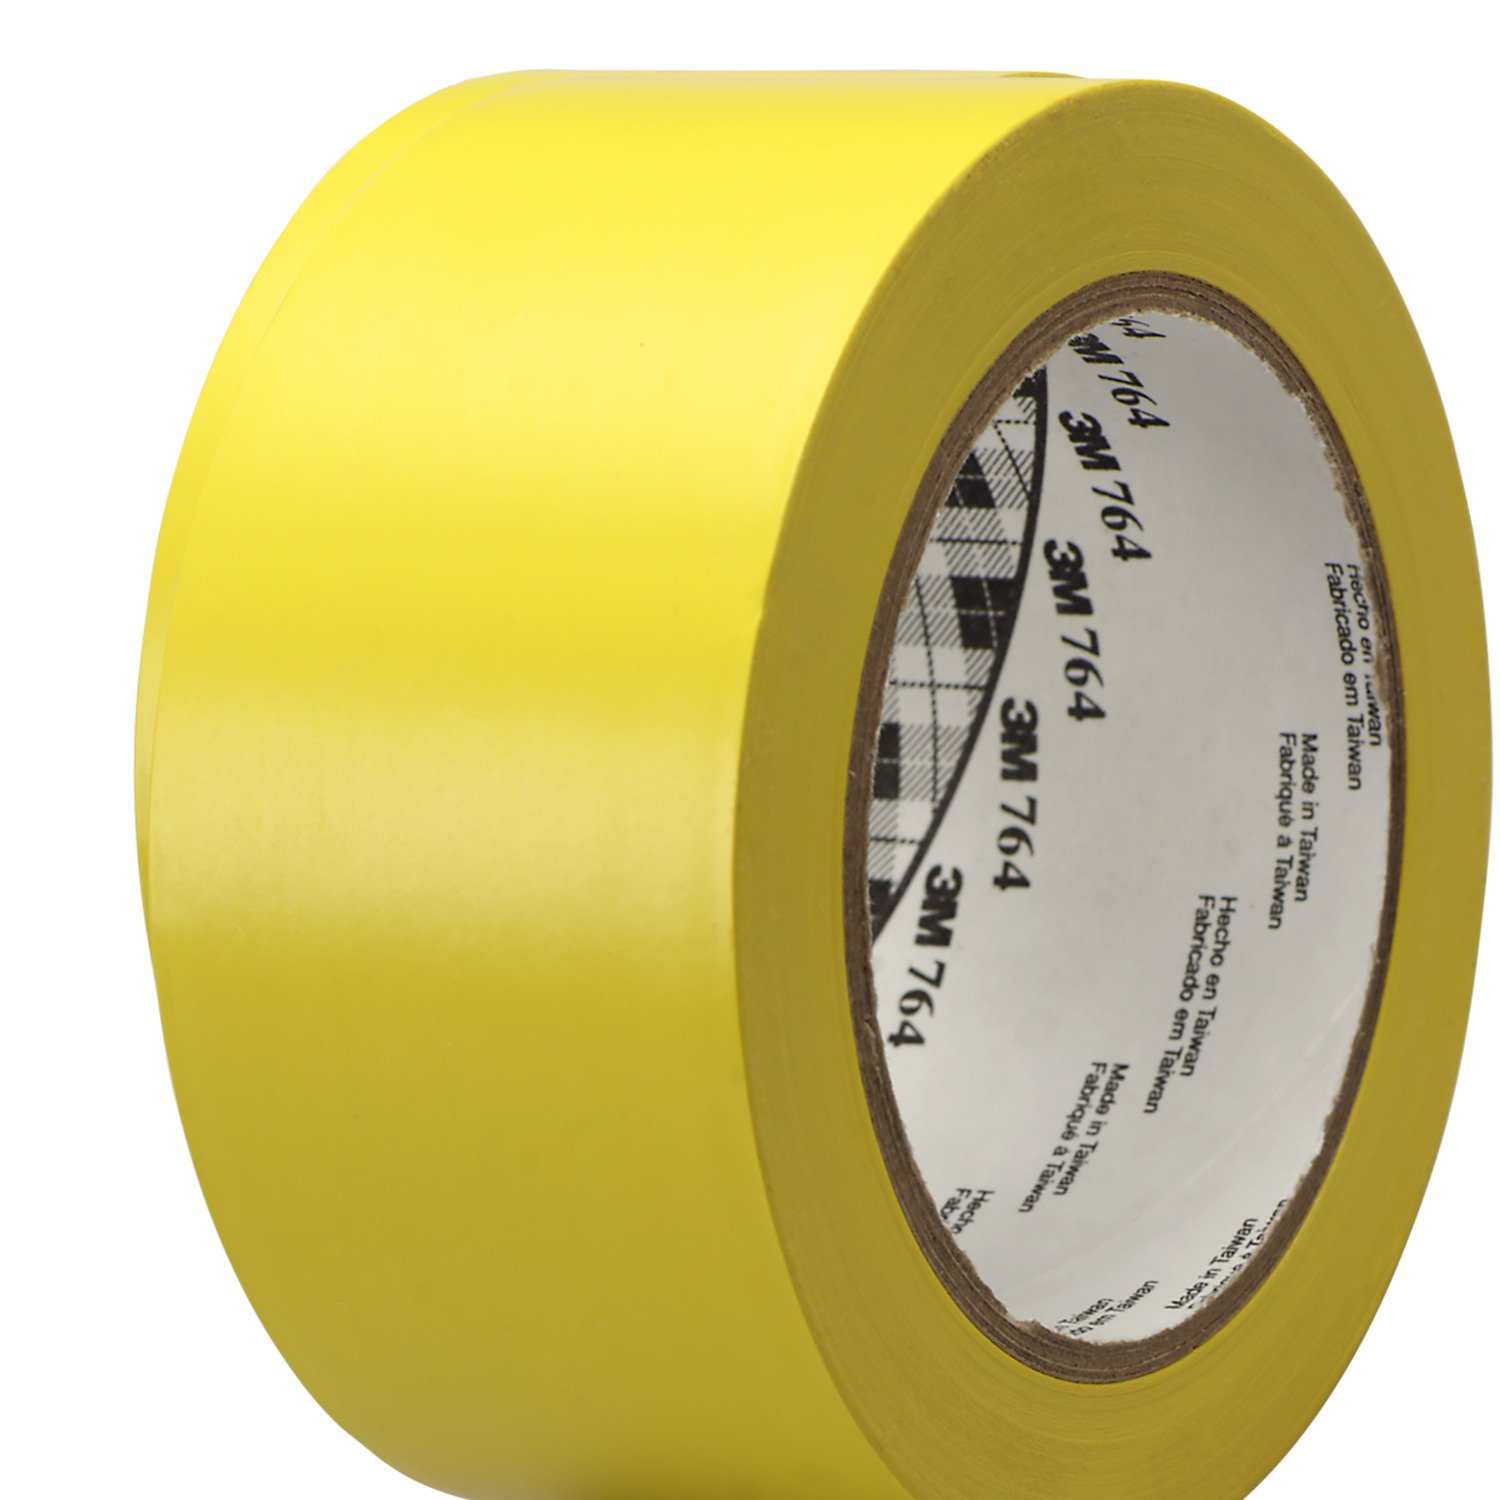 3M General Purpose Vinyl Tape 764, Yellow, 2 in x 36 yd, 5 mil